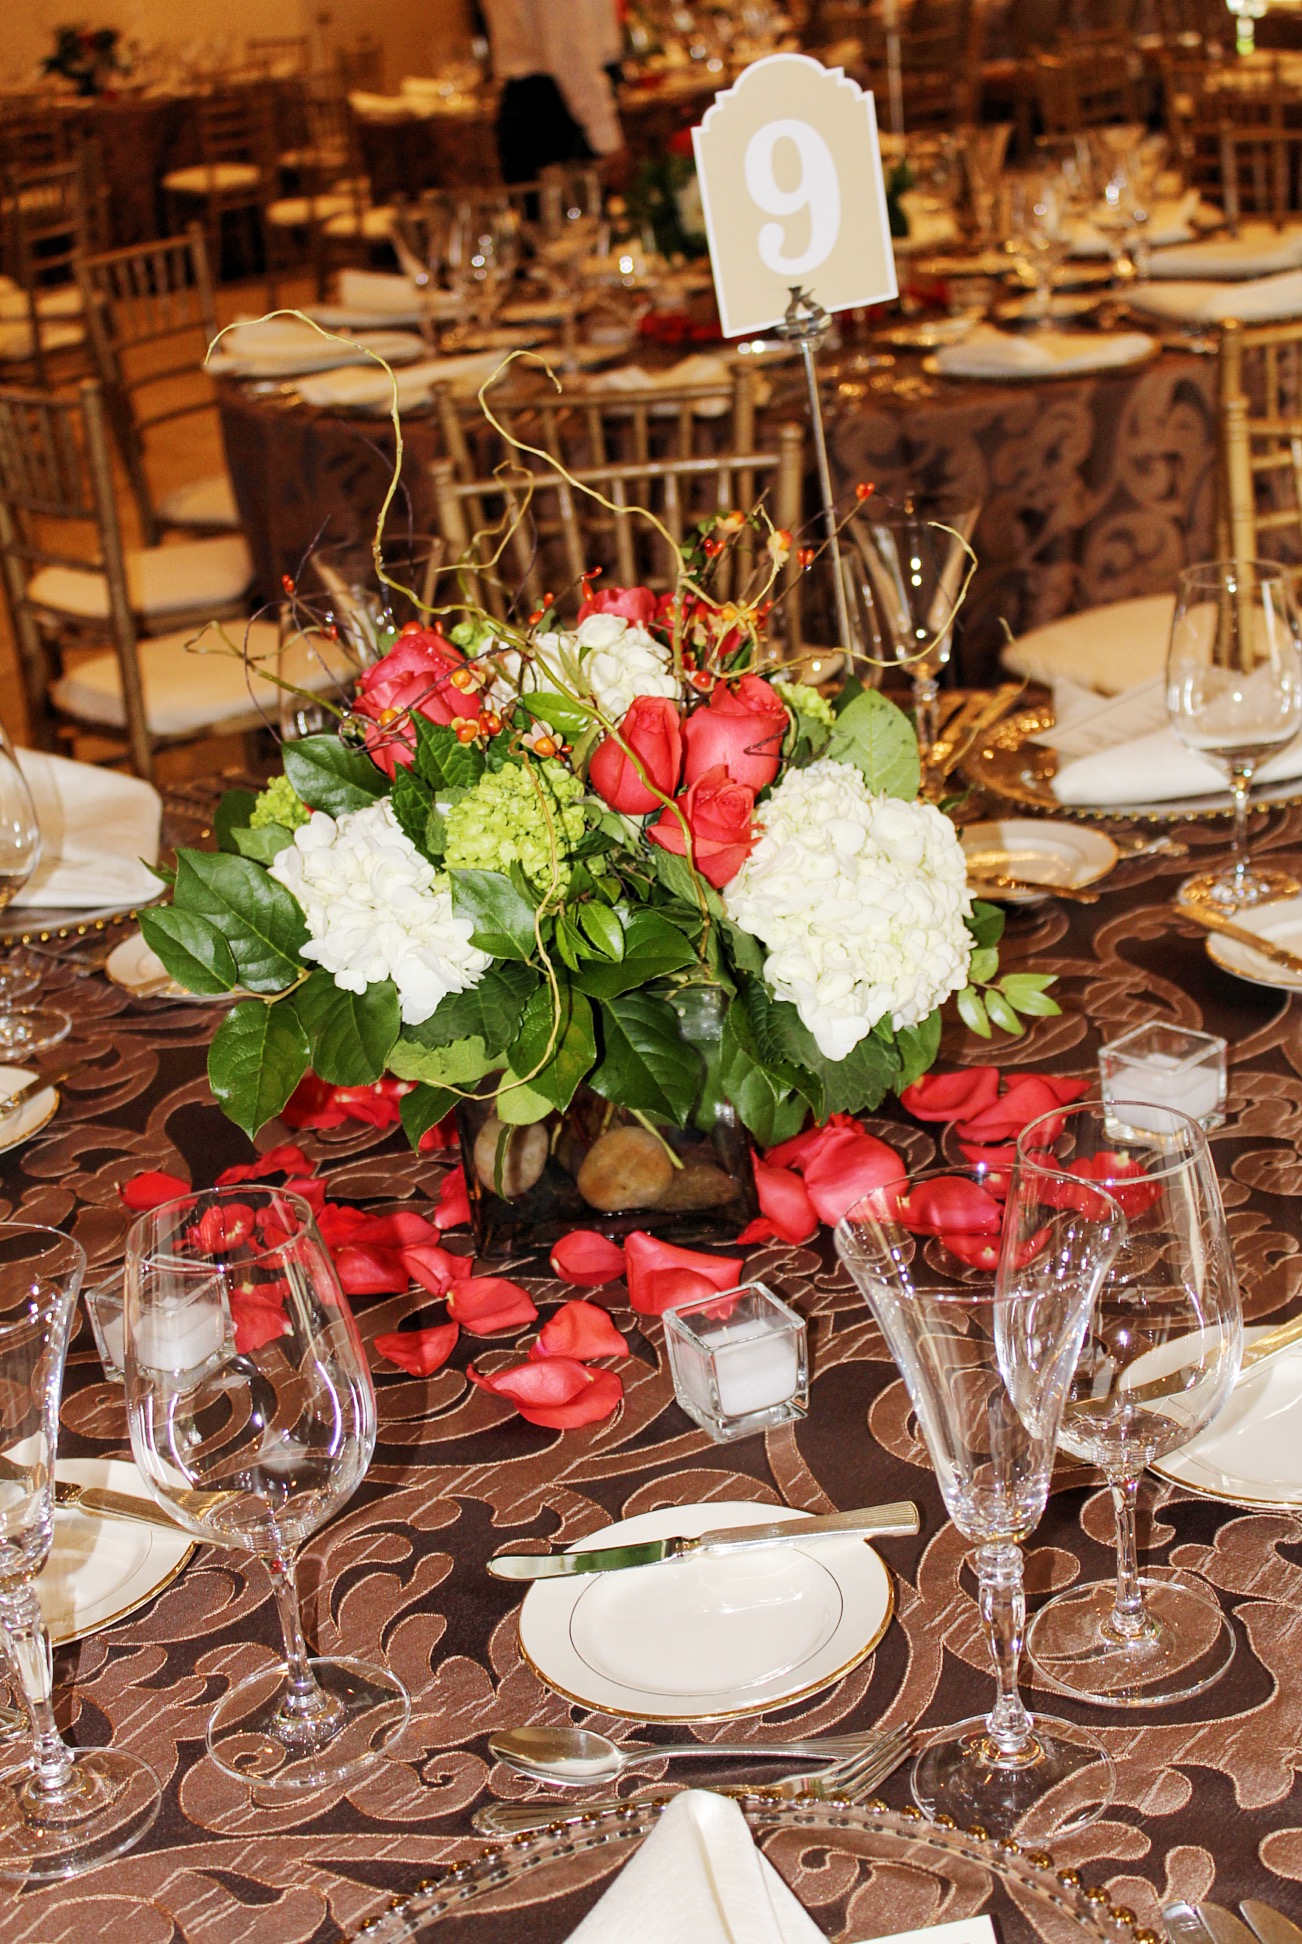 Centerpiece & Table Numbers